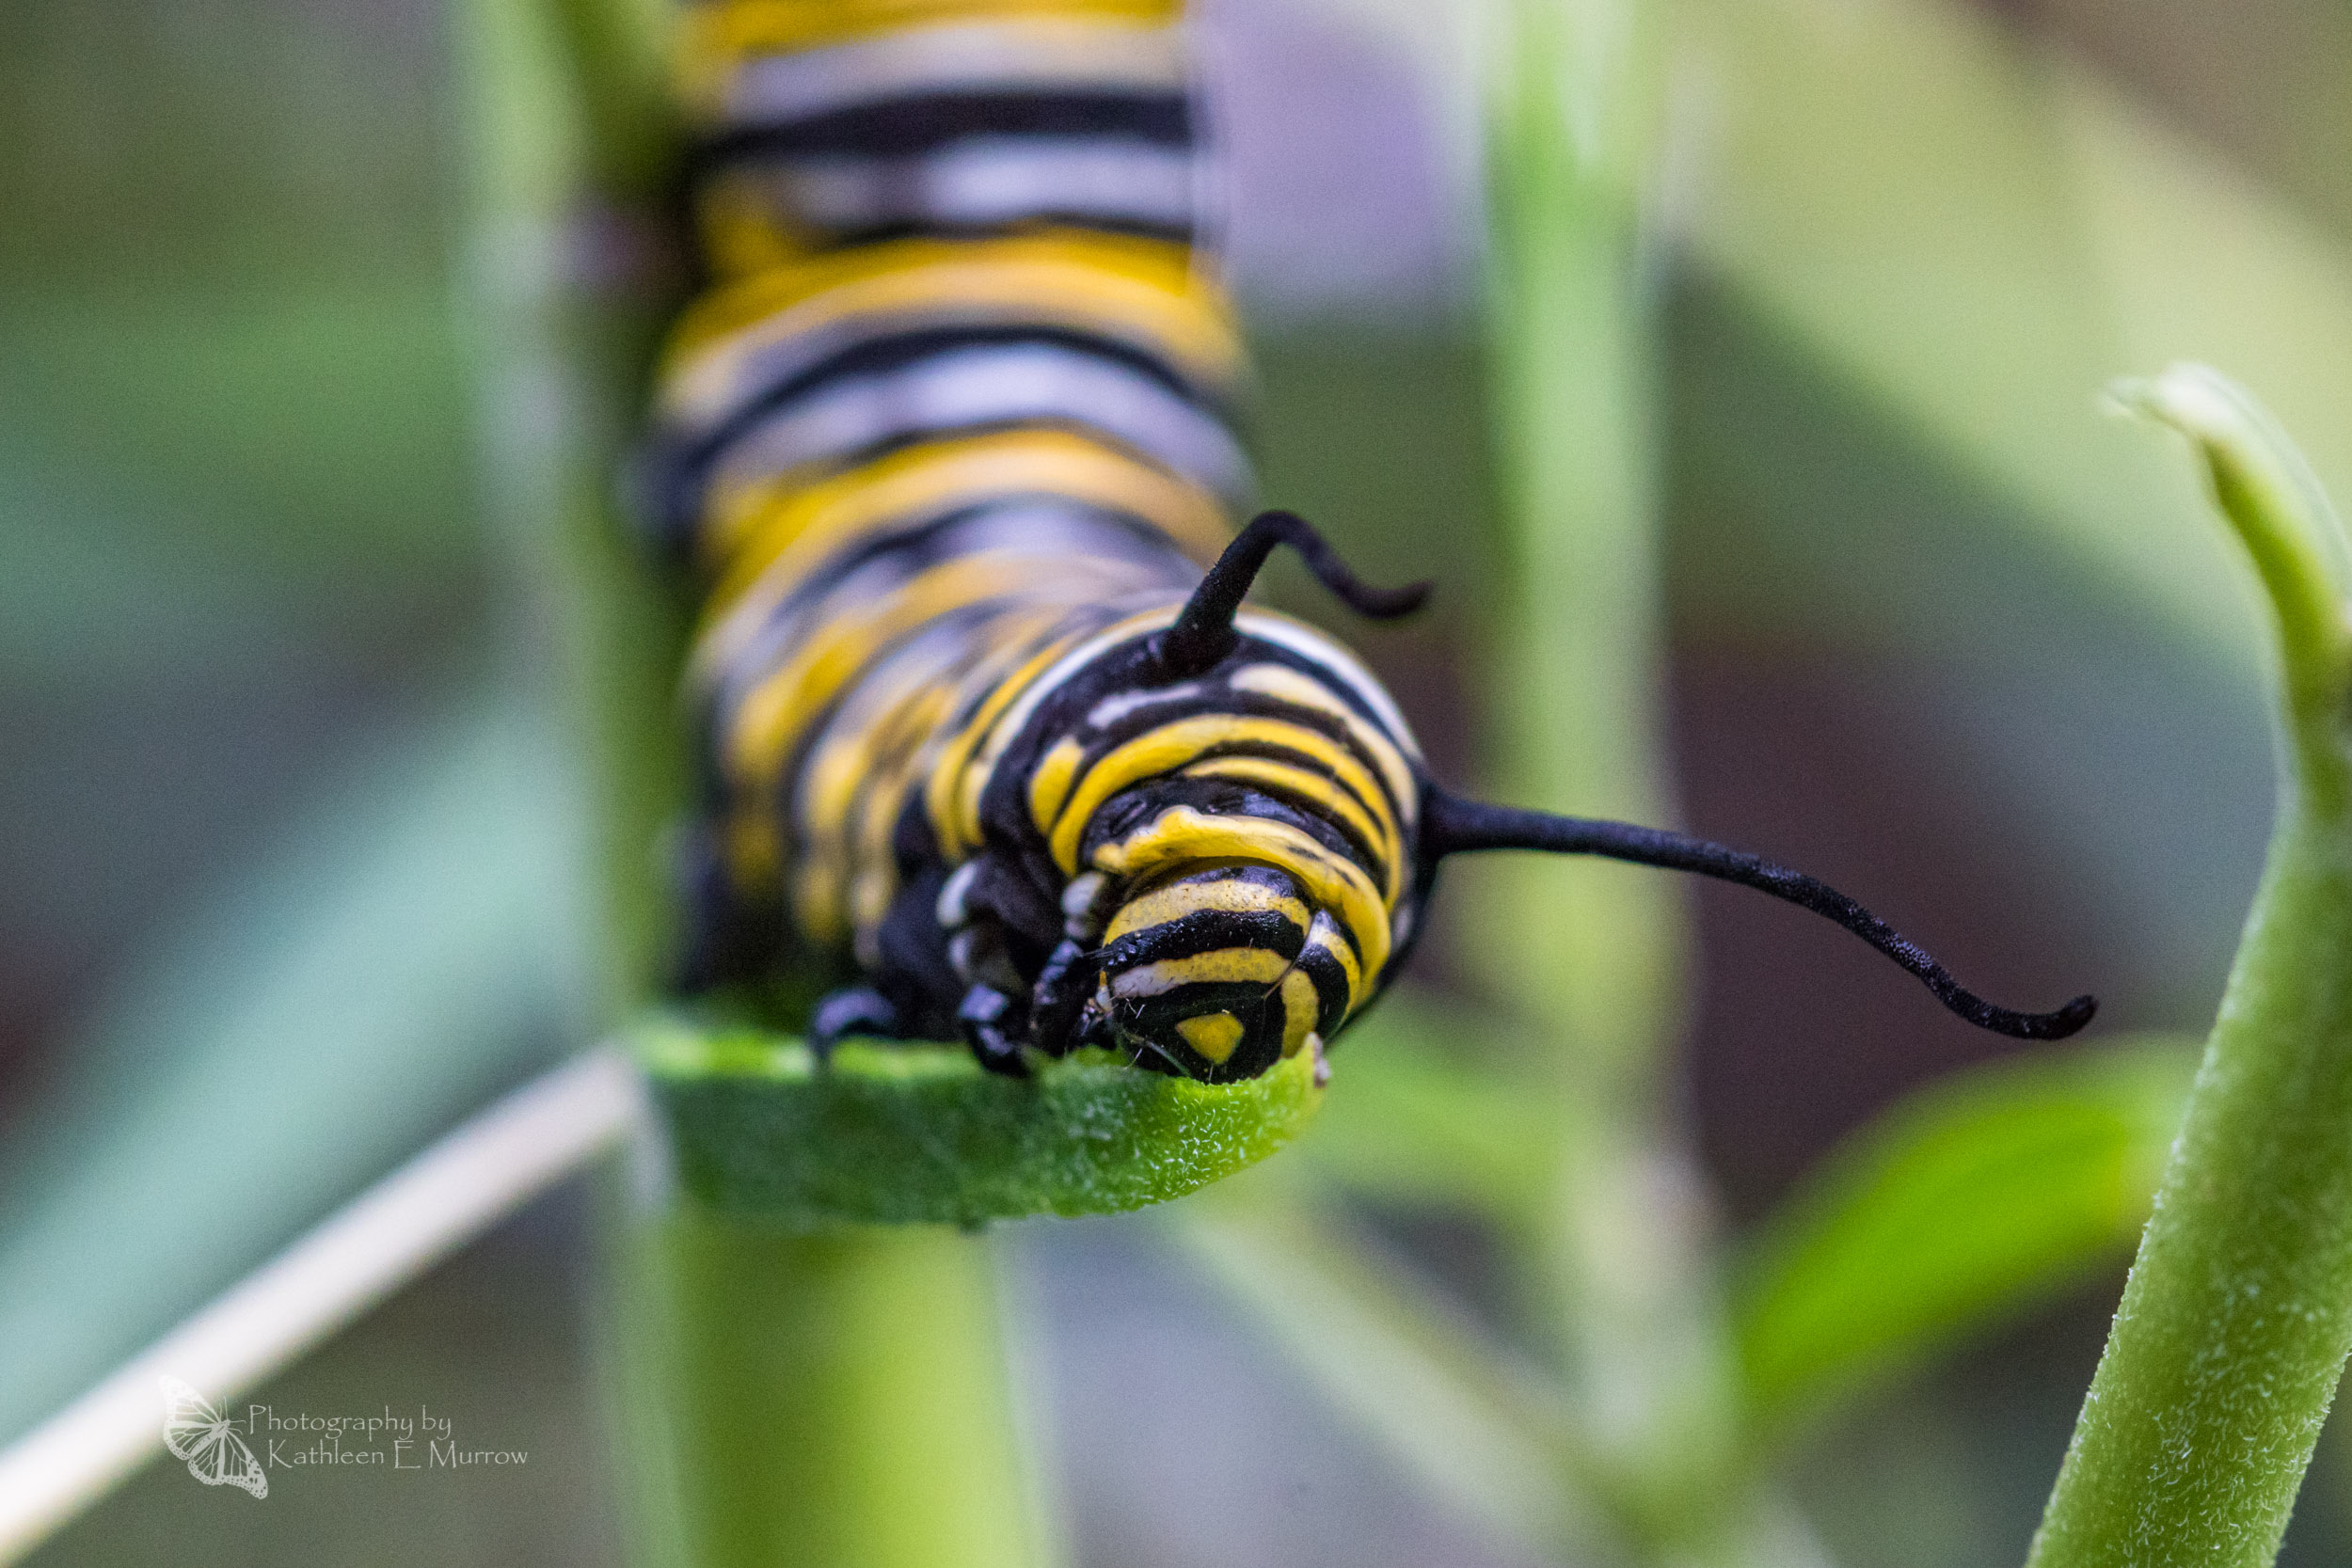 A close-up of a fifth-instar monarch caterpillar eating a swan plant leaf